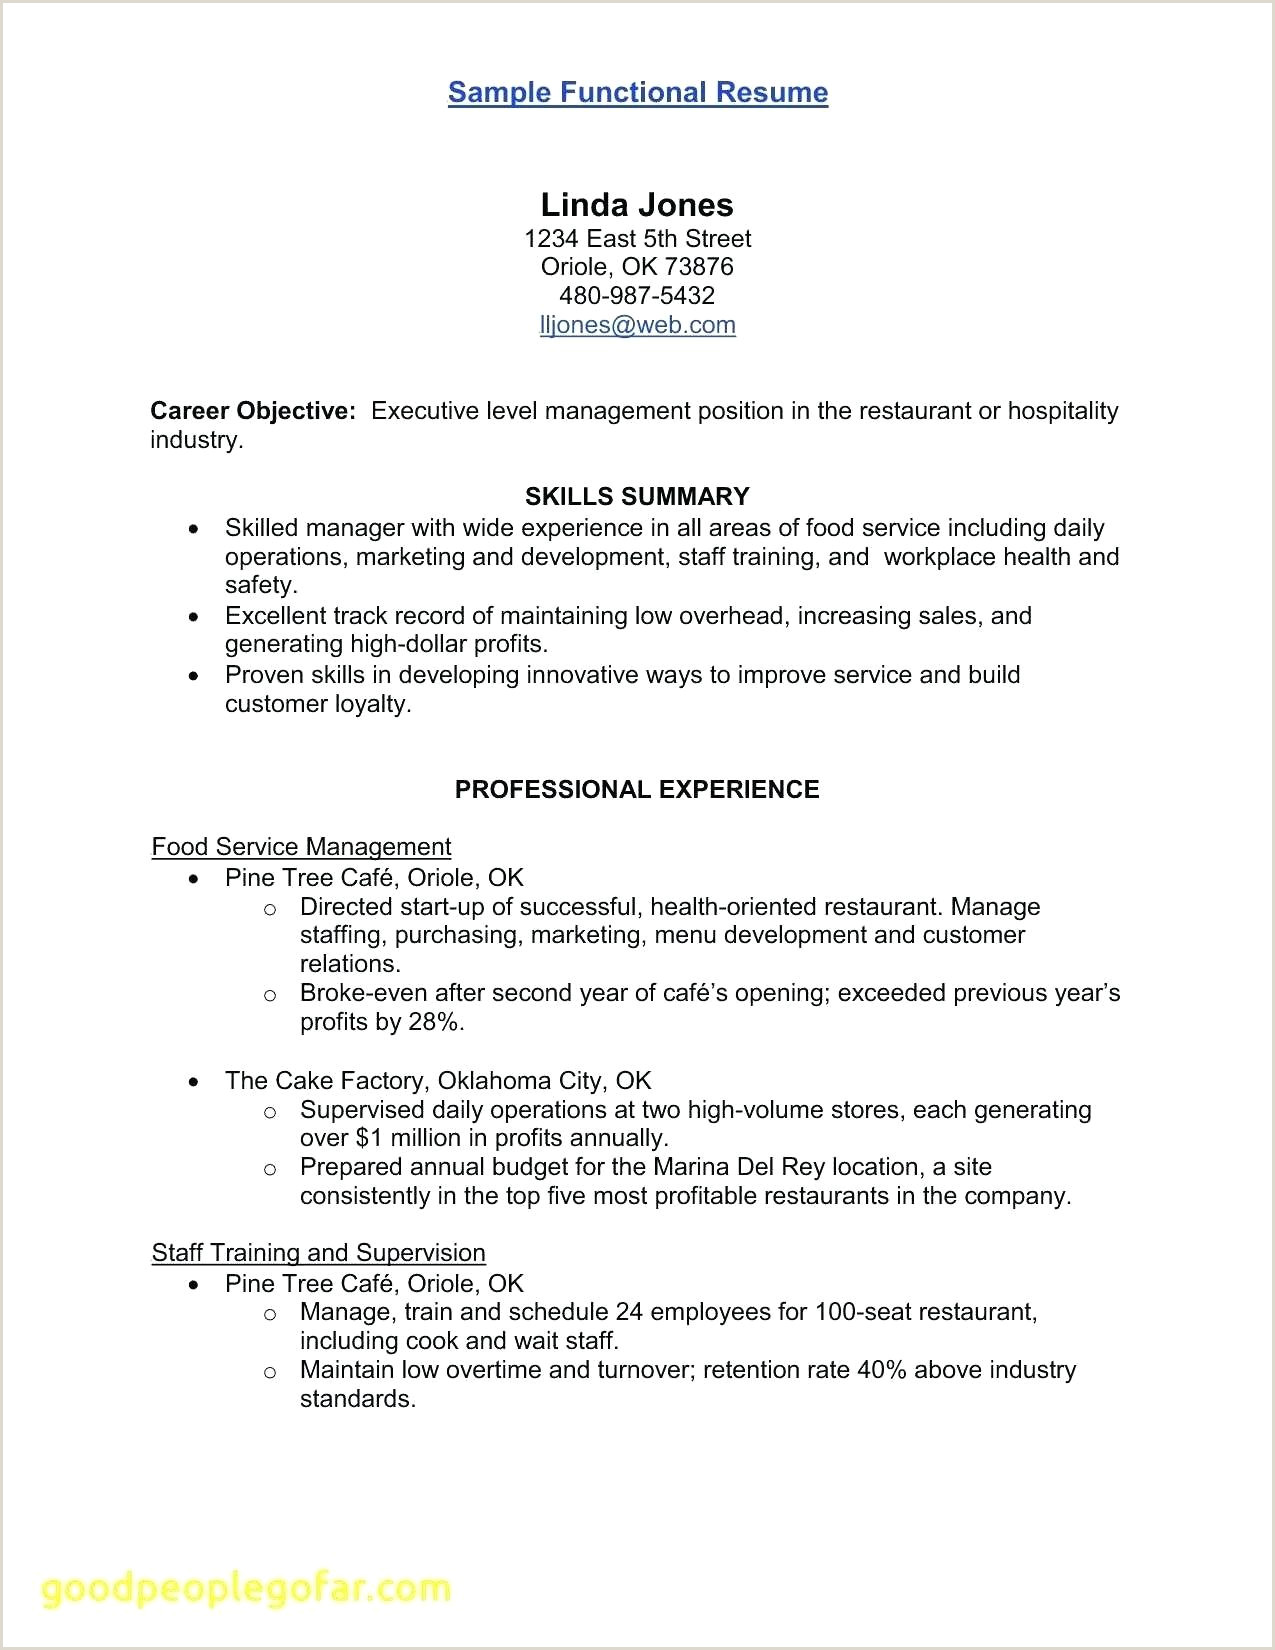 Resume for Quality Control Technician Resume Quality assurance Technician Resume